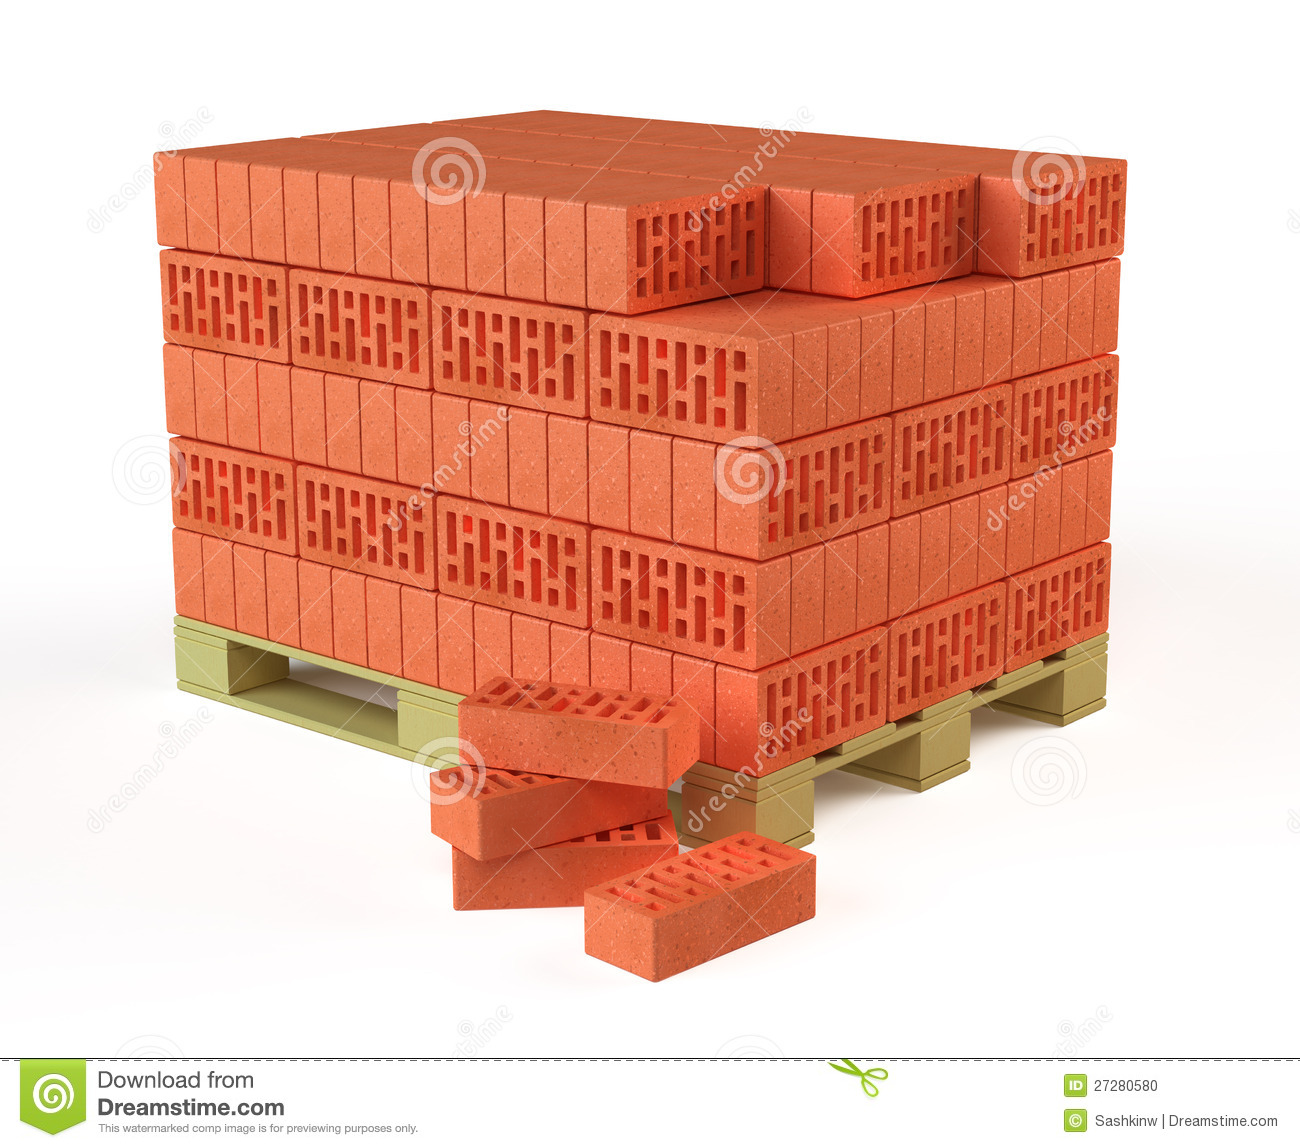 Build It Bricks Prices: Bricks On Pallet Stock Illustration. Image Of Real, Build